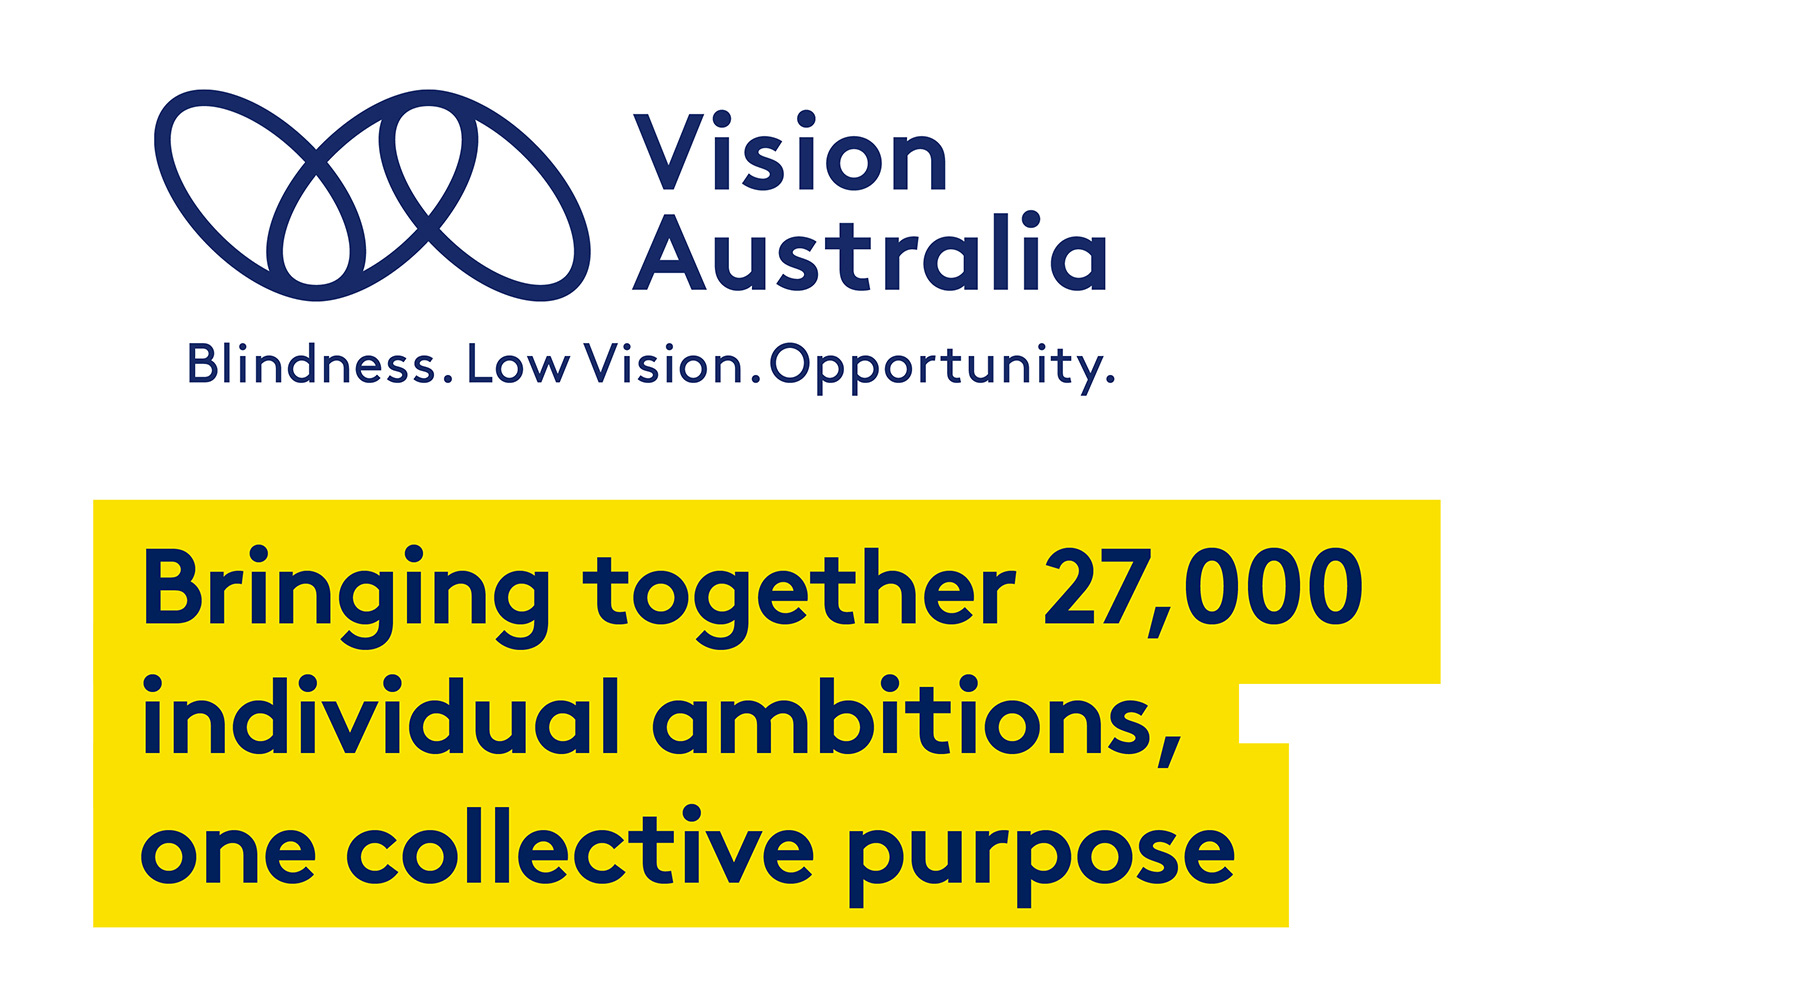 Vision Australia logo. Tagline: Blindness. Low Vision. Opportunity. Text reads: bringing together 27,000 individual ambitions, one collective purpose.